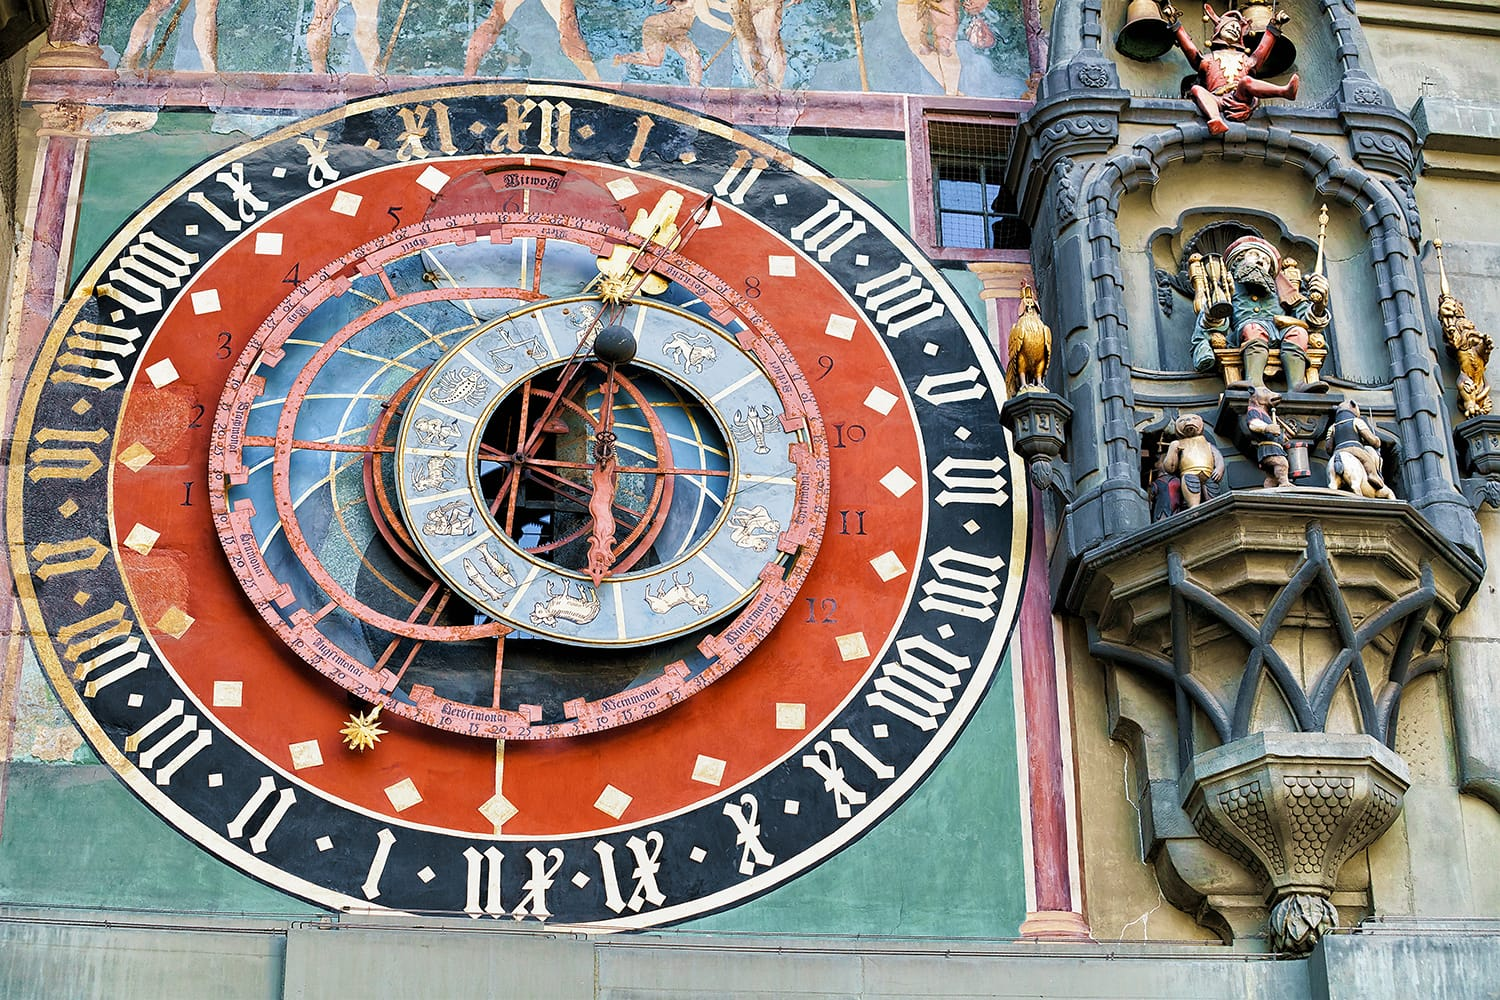 Fragment of Zytglogge clock in old city center of Bern, Switzerland